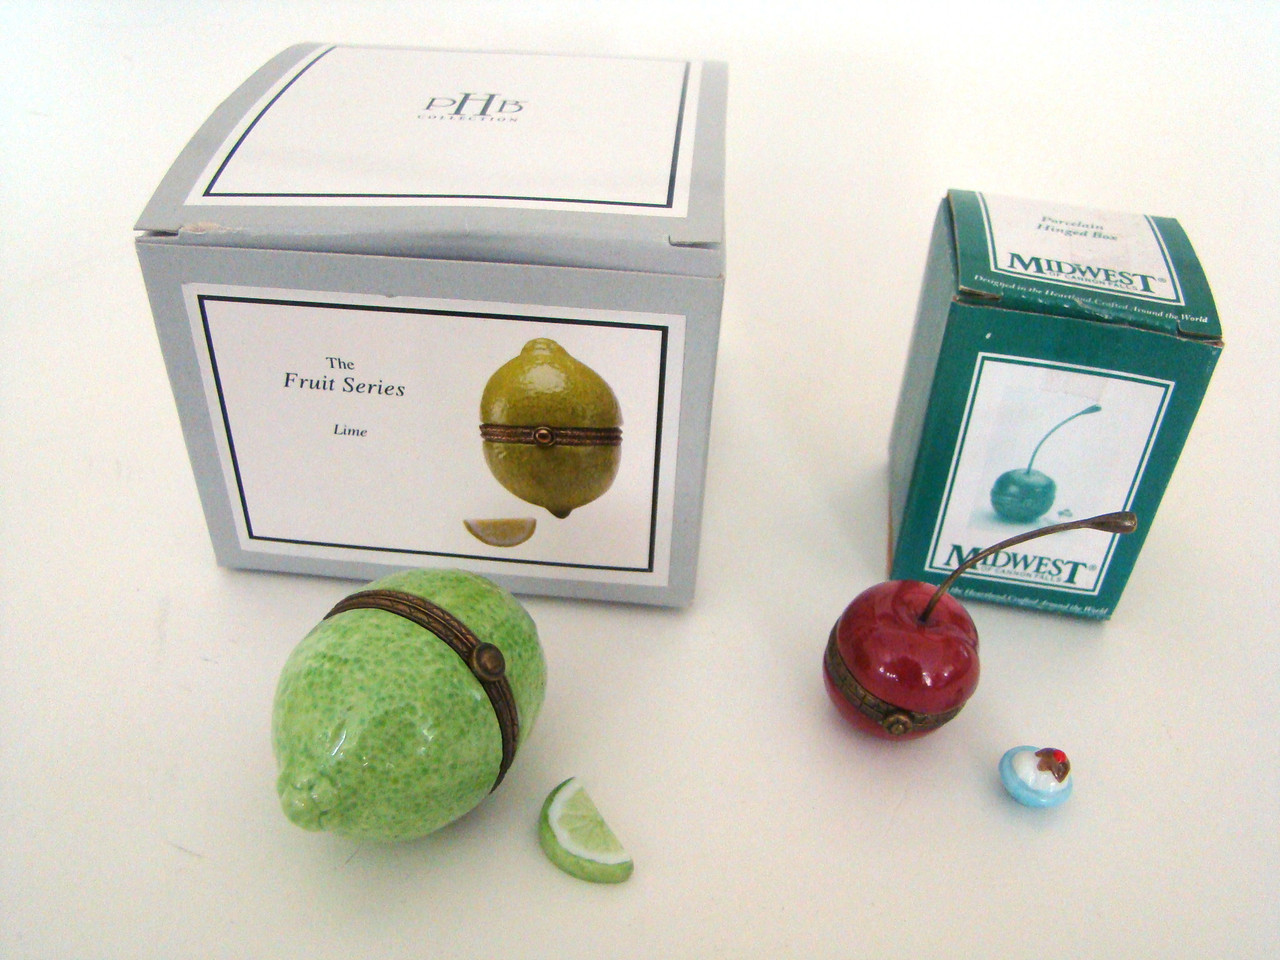 Fruit Series SET of 2 fruit Cherry and Lime PHB